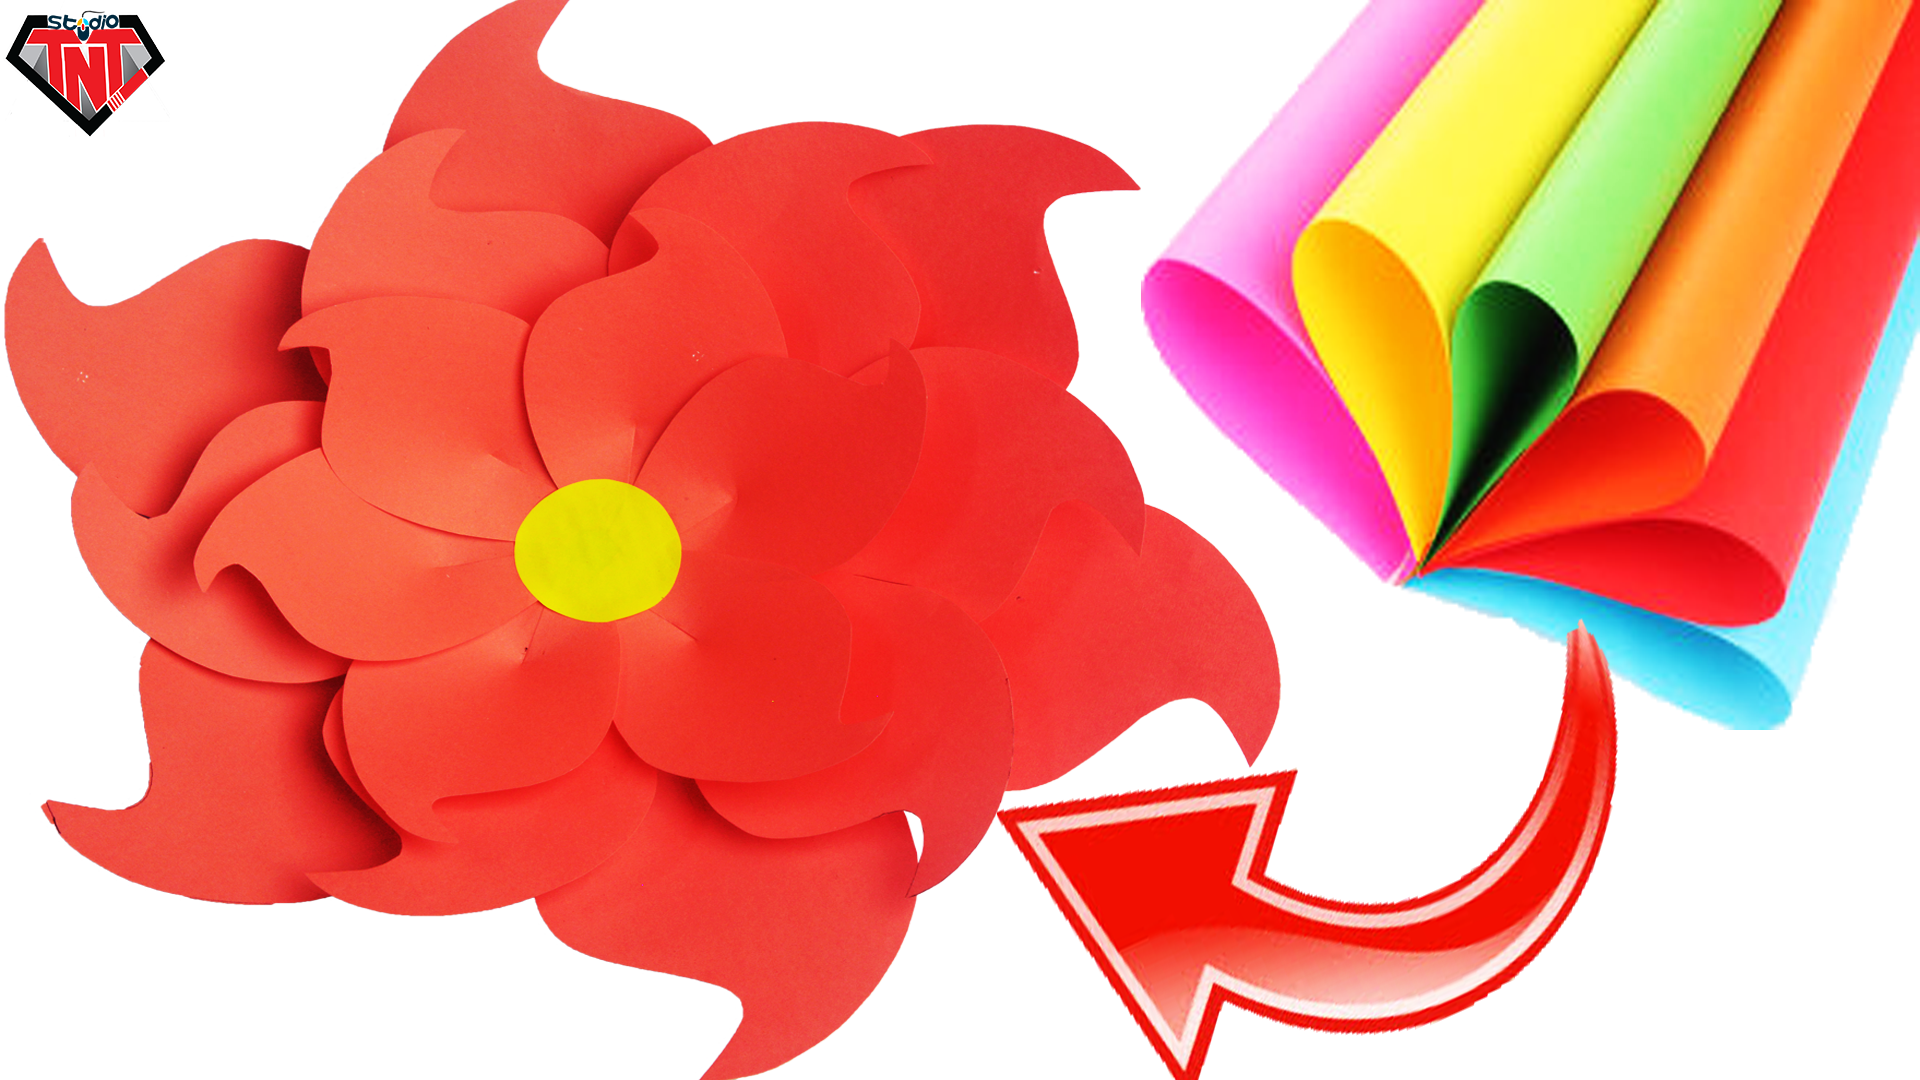 How To Make Giant Paper Flowers Easy Diy Wall Hanging Craft